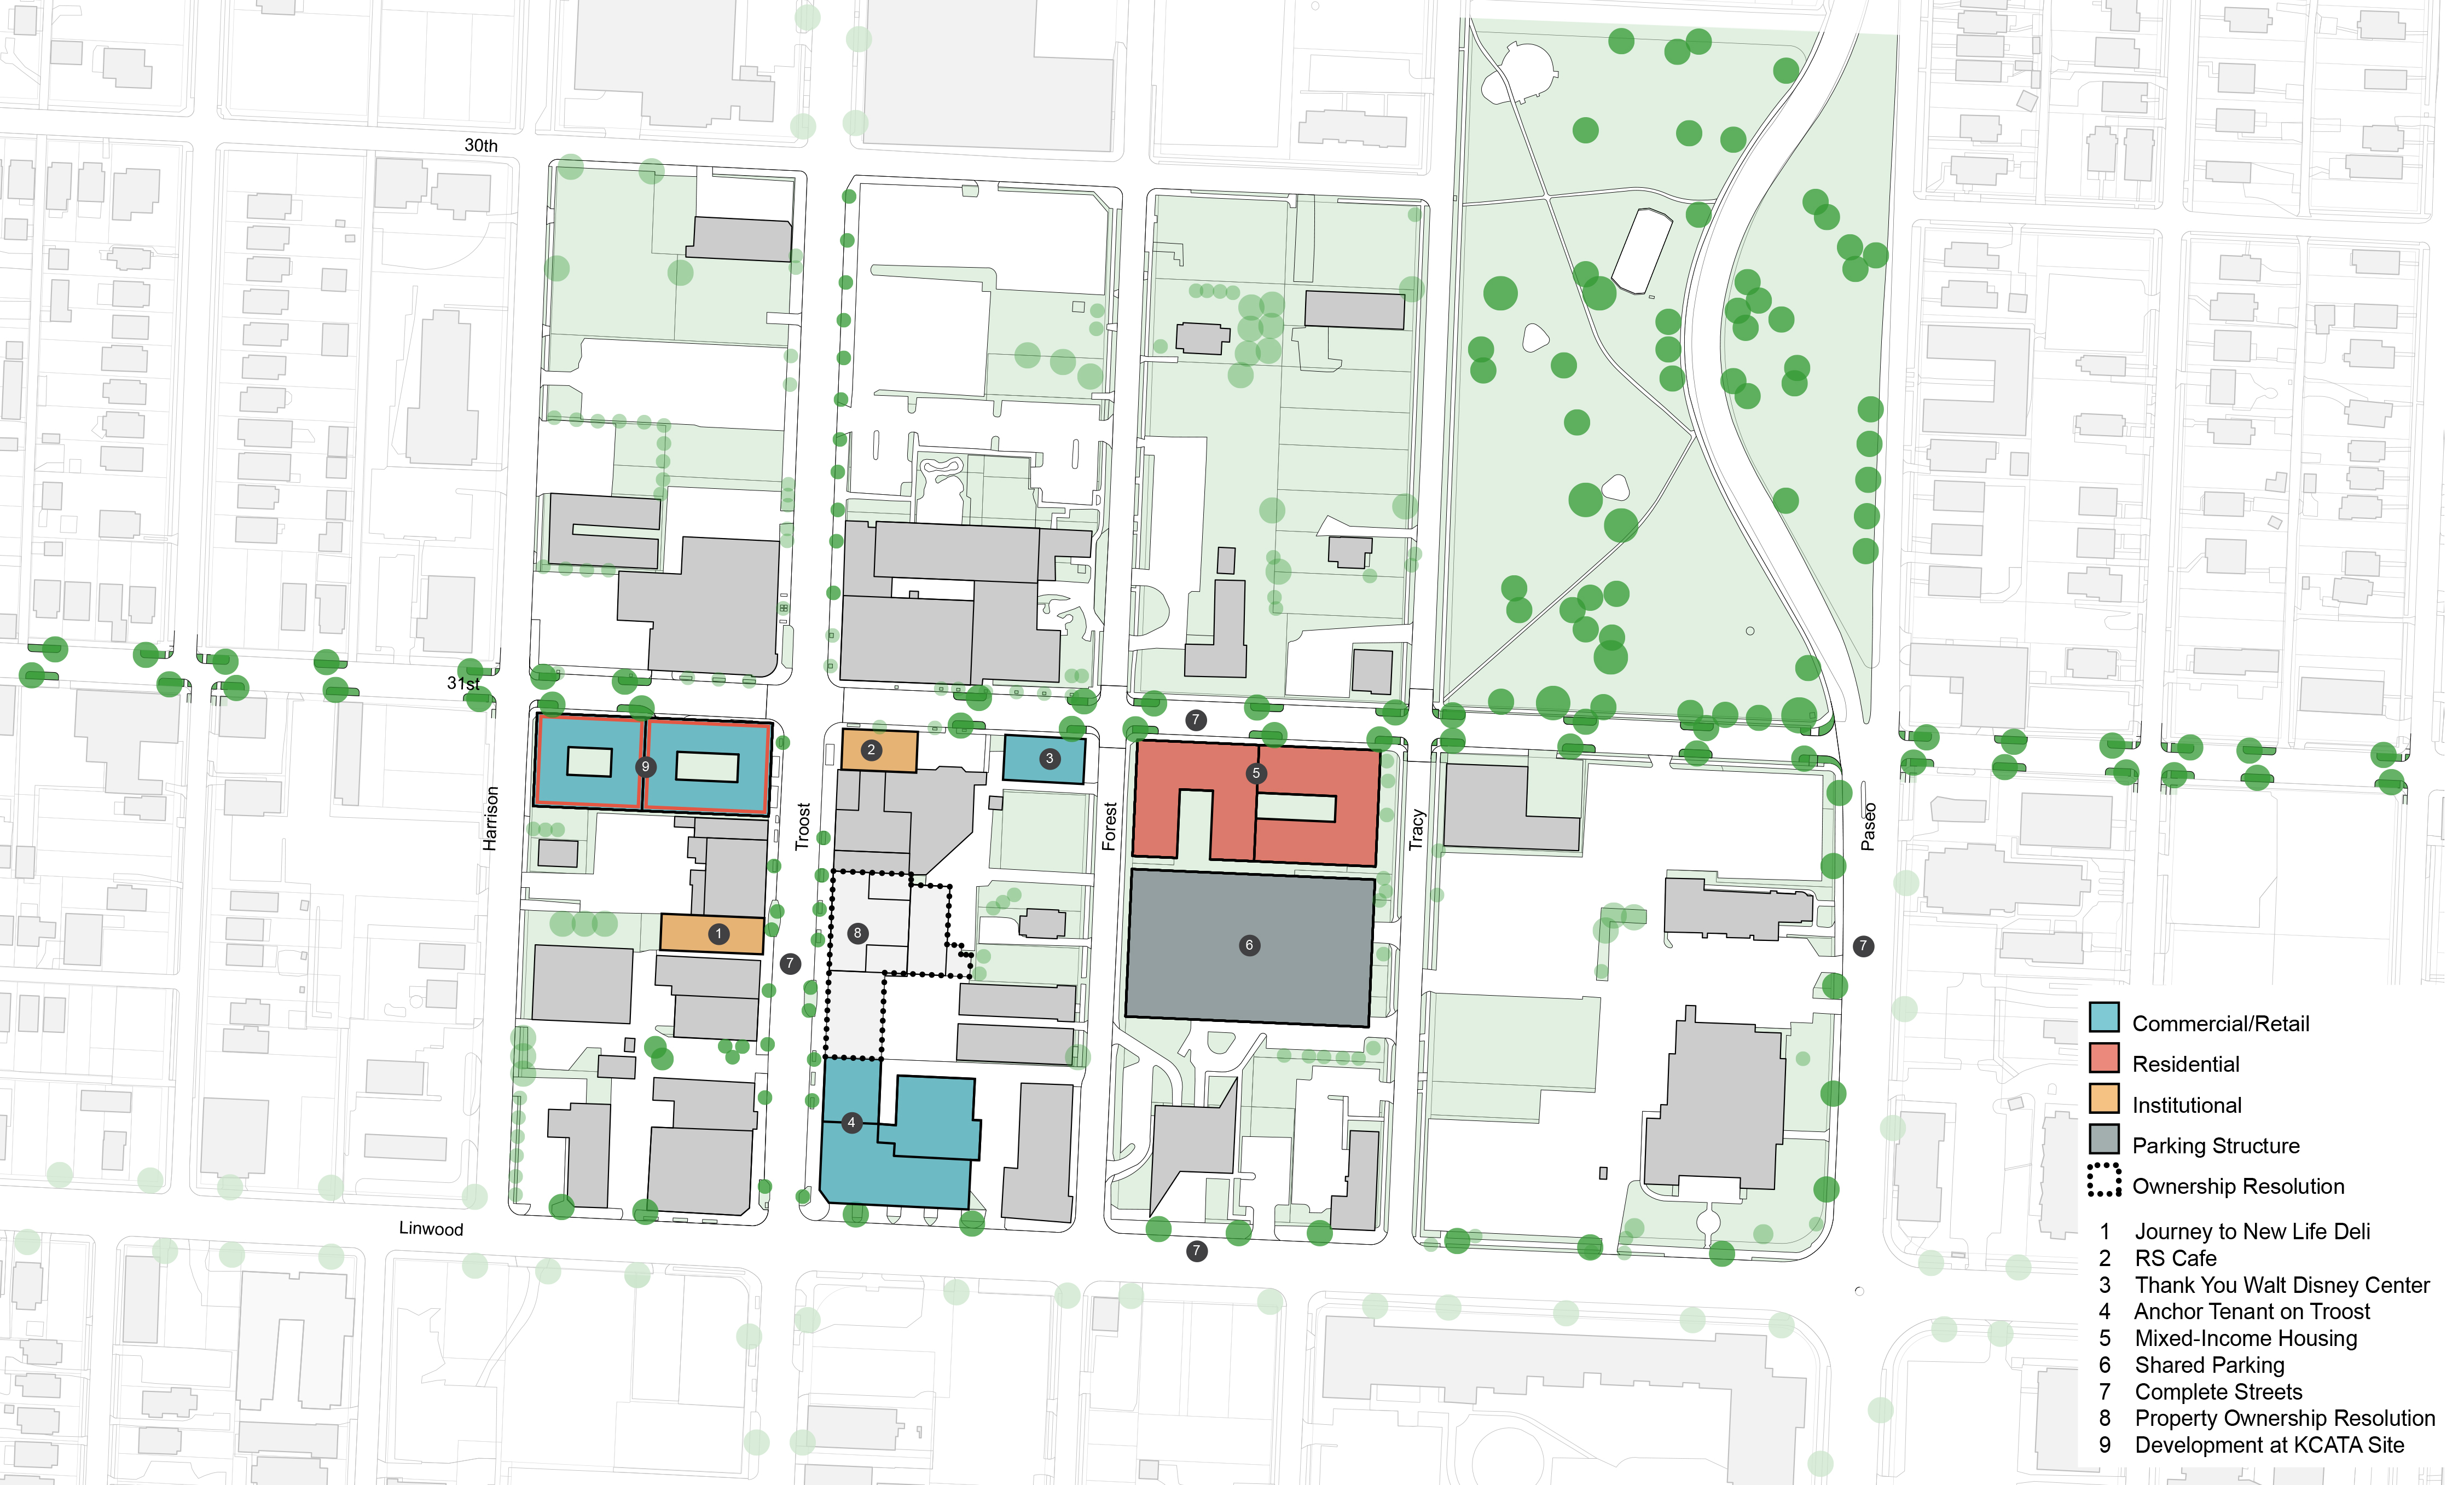 31st and Troost Revitalization Scenario catalytic project map